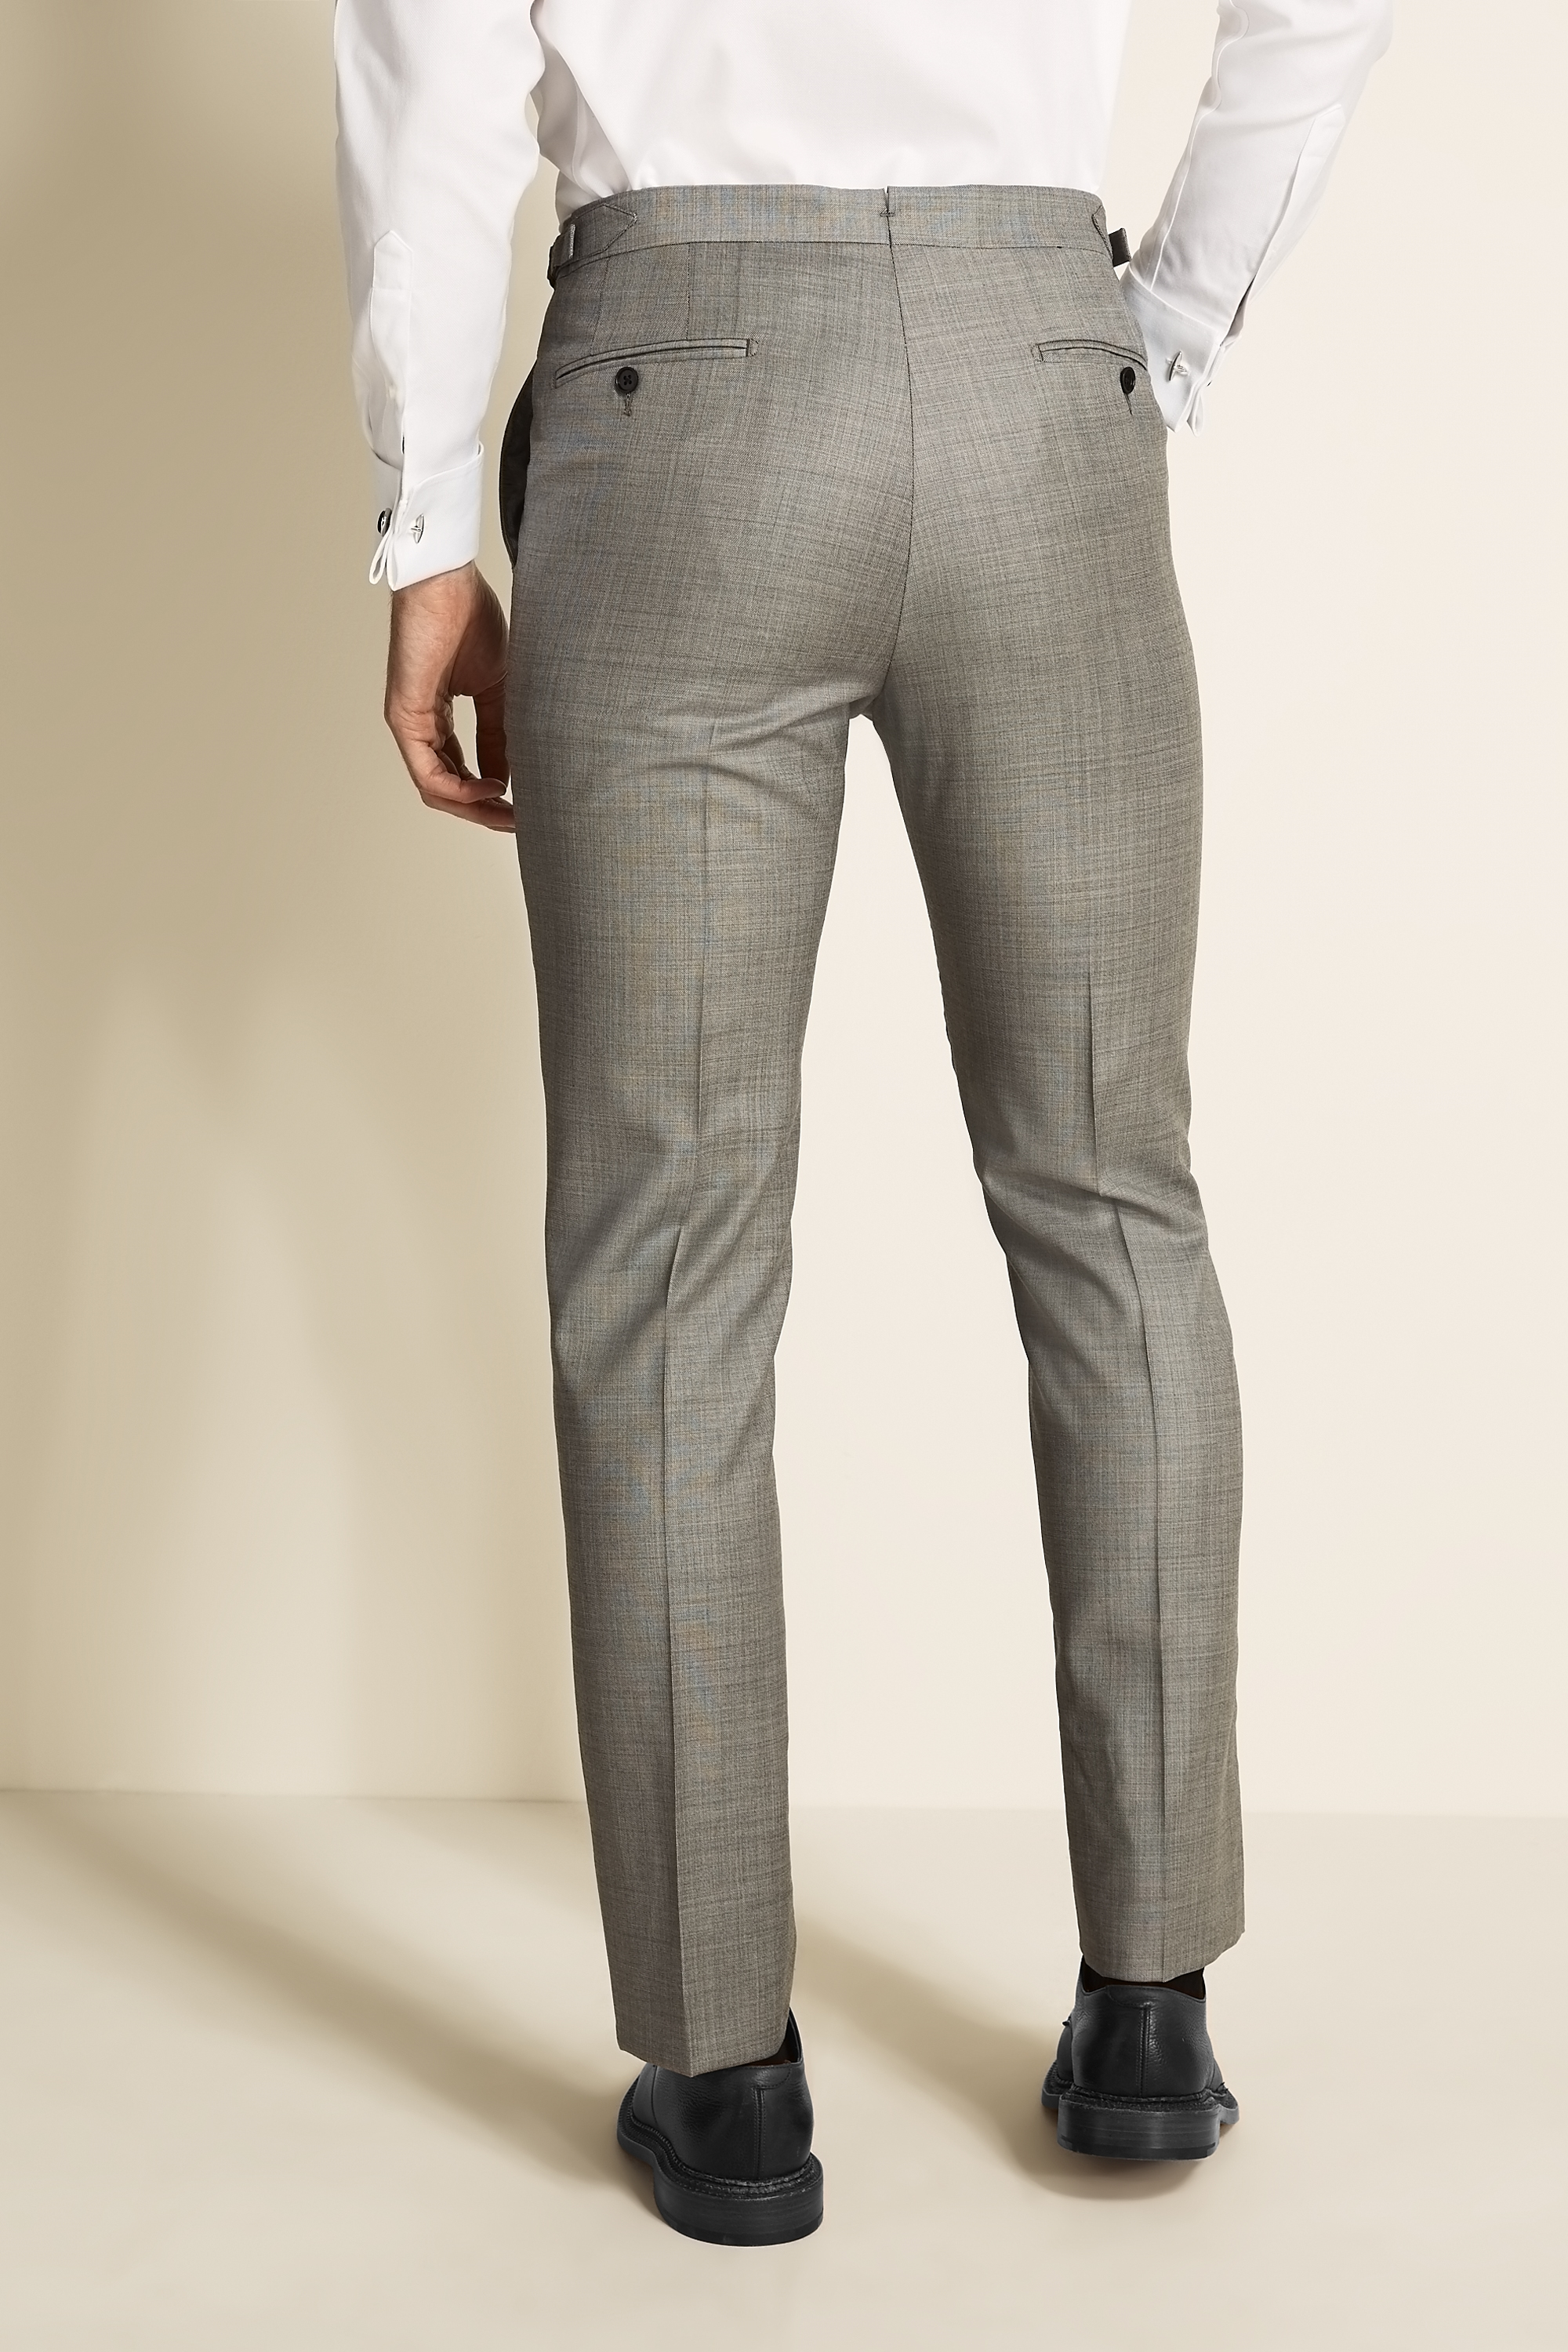 Covent Garden Tailored Fit Light Grey Sharkskin Trousers By Moss Bros Thread Com